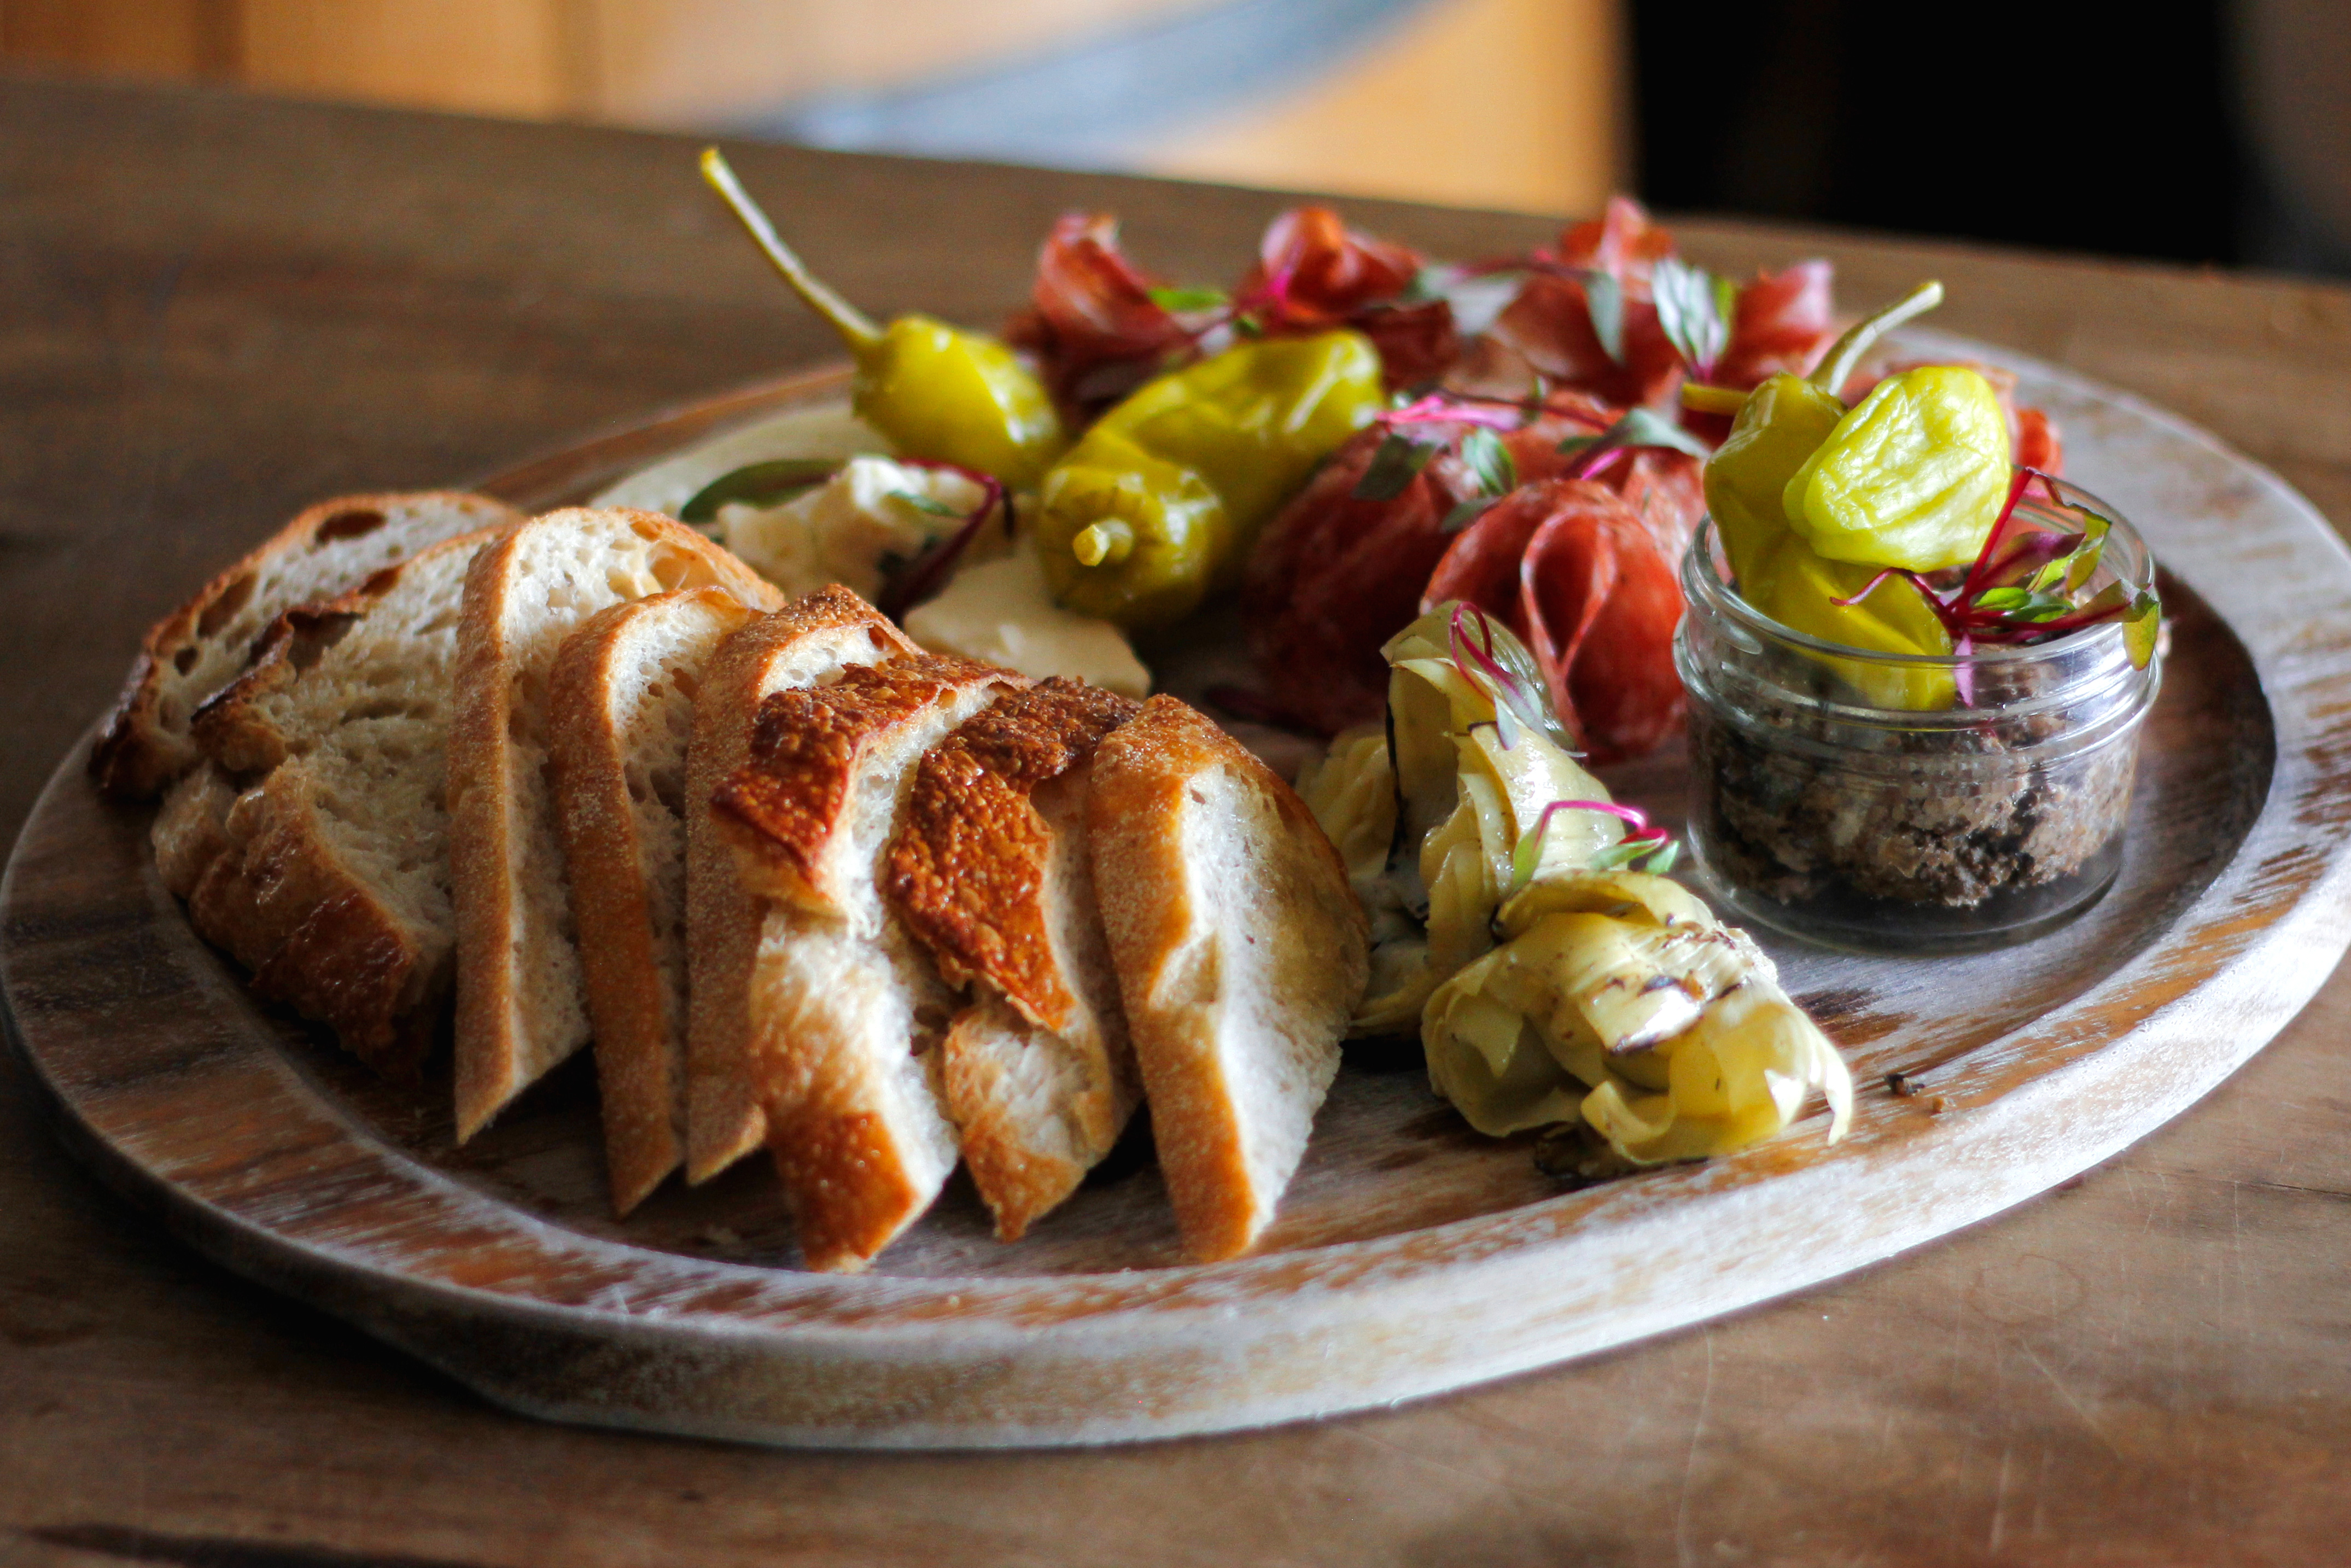 Prairie Berry Winery Kitchen's offers a variety of artisan plates, including our delicious Antipasto Platter.